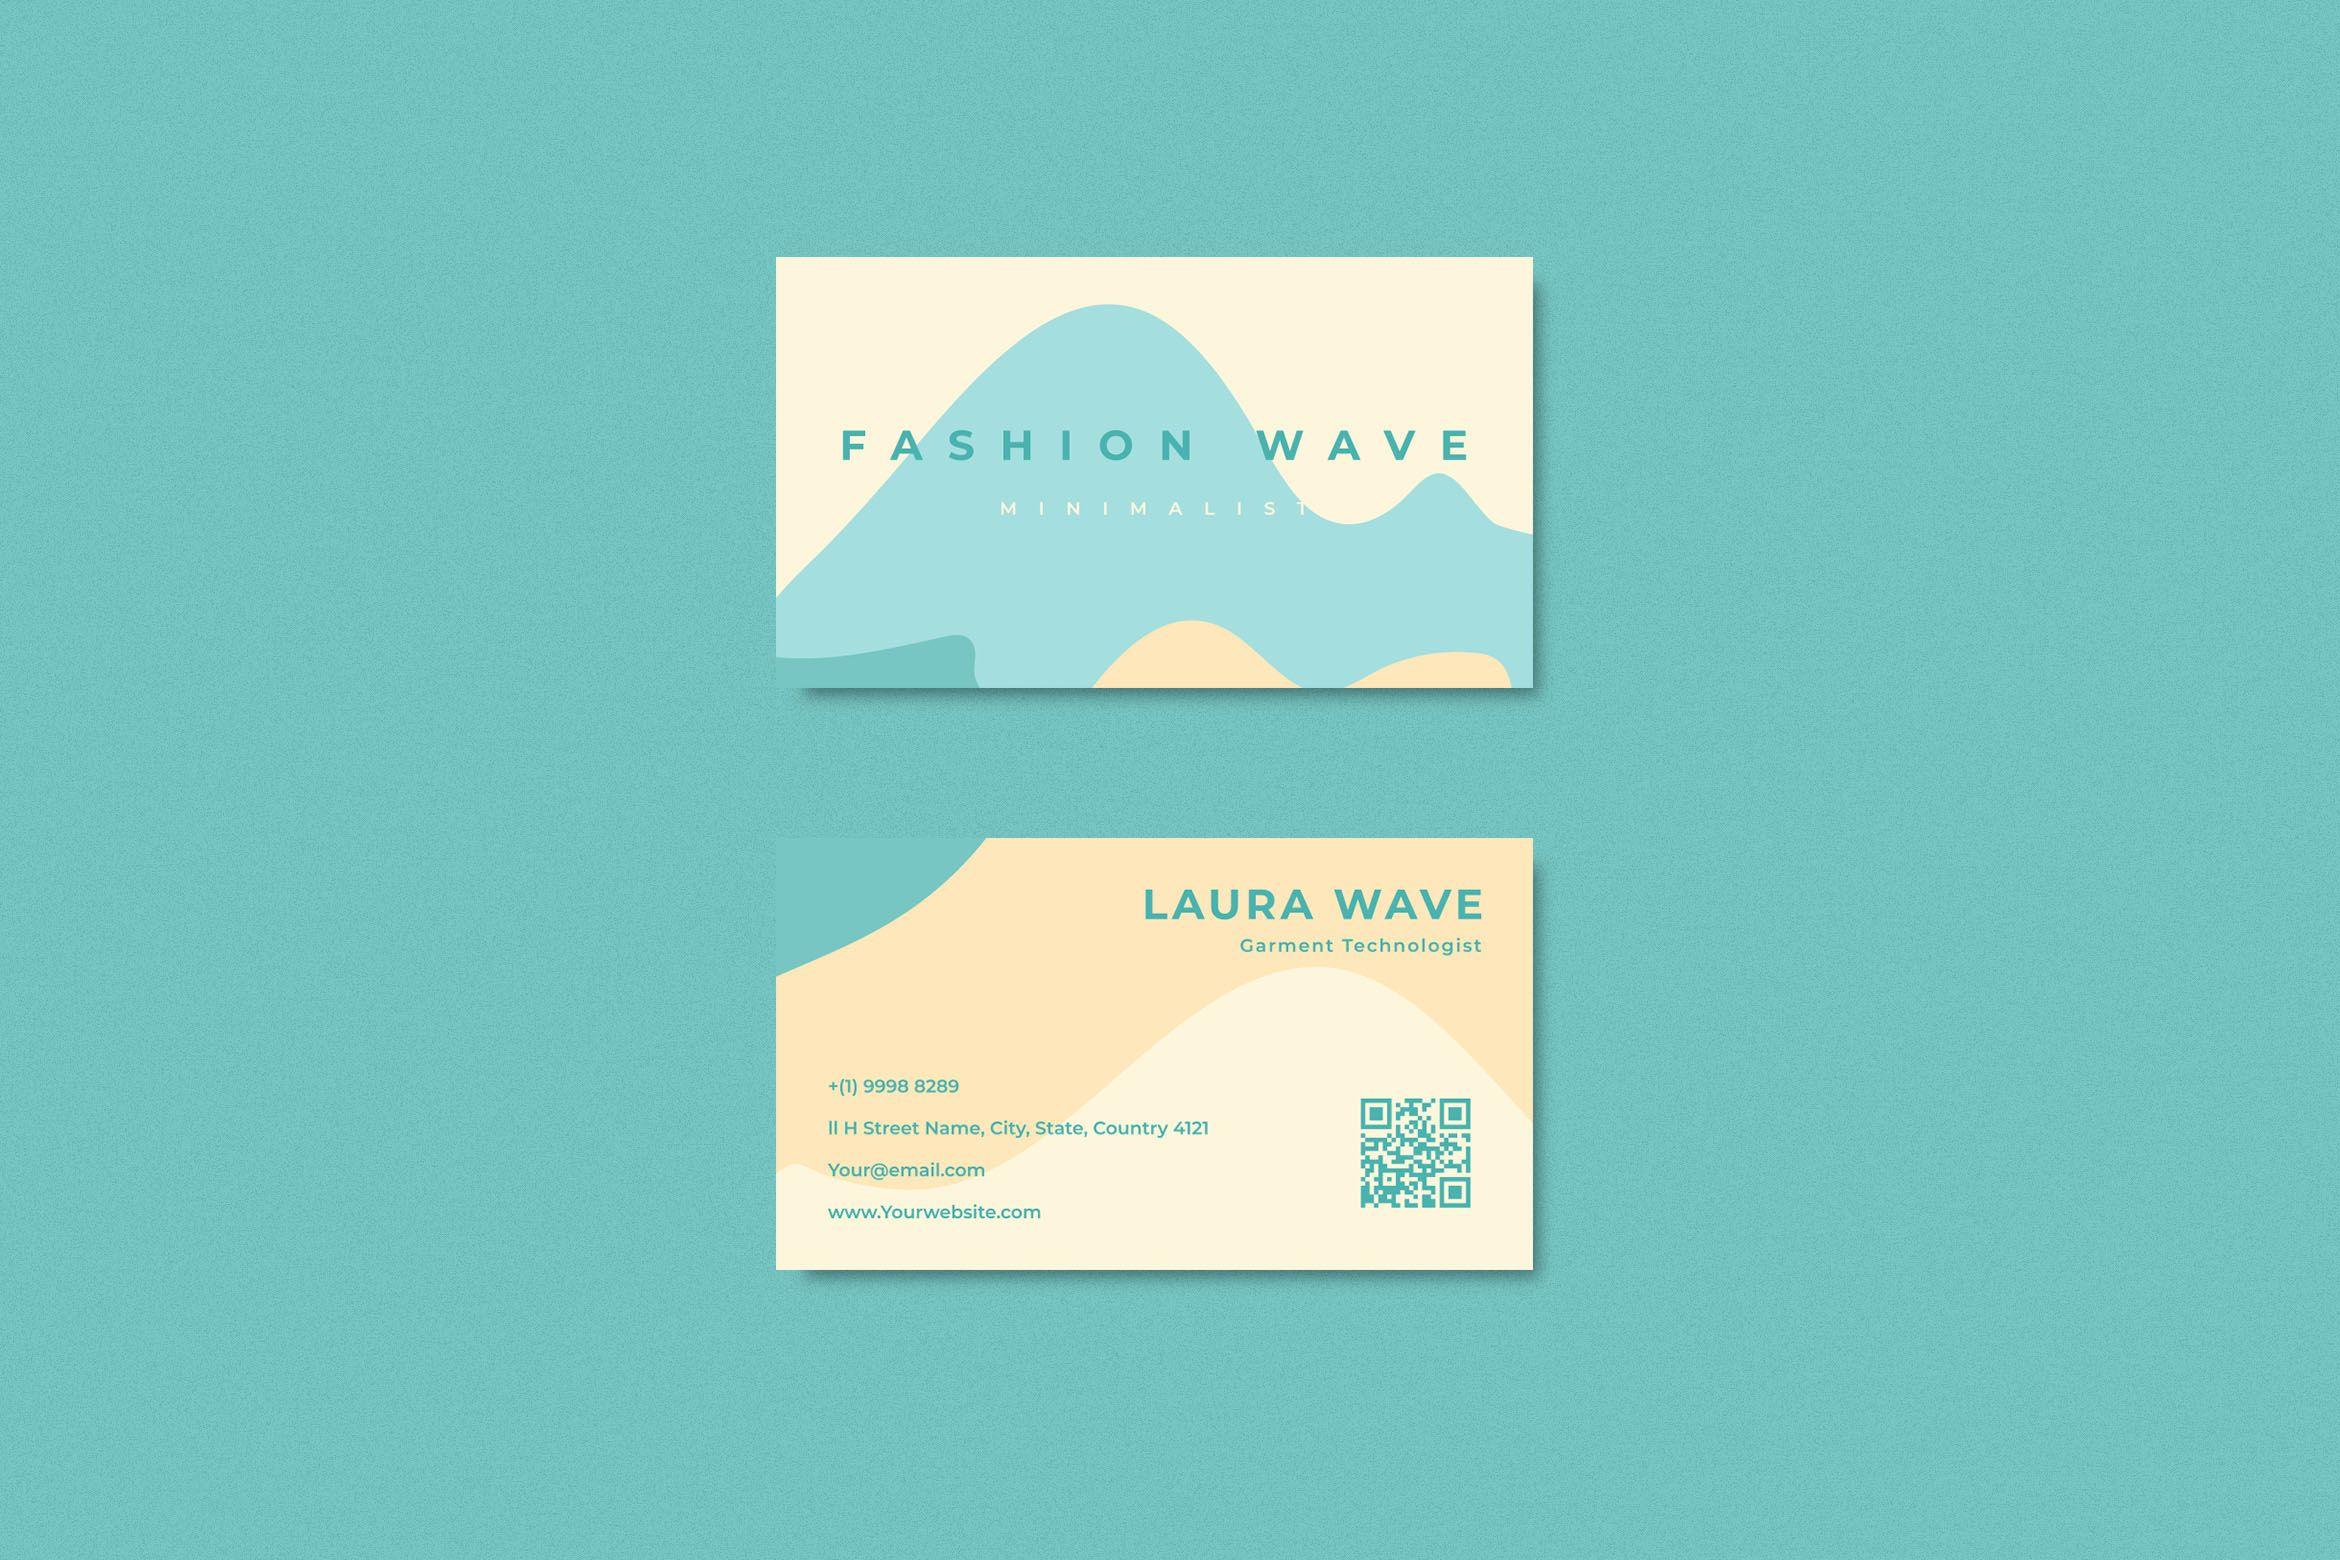 Simple Fashion wave blue abstract business card template eps 10 in 2020 | Business  cards beauty, Blue abstract, Business card design